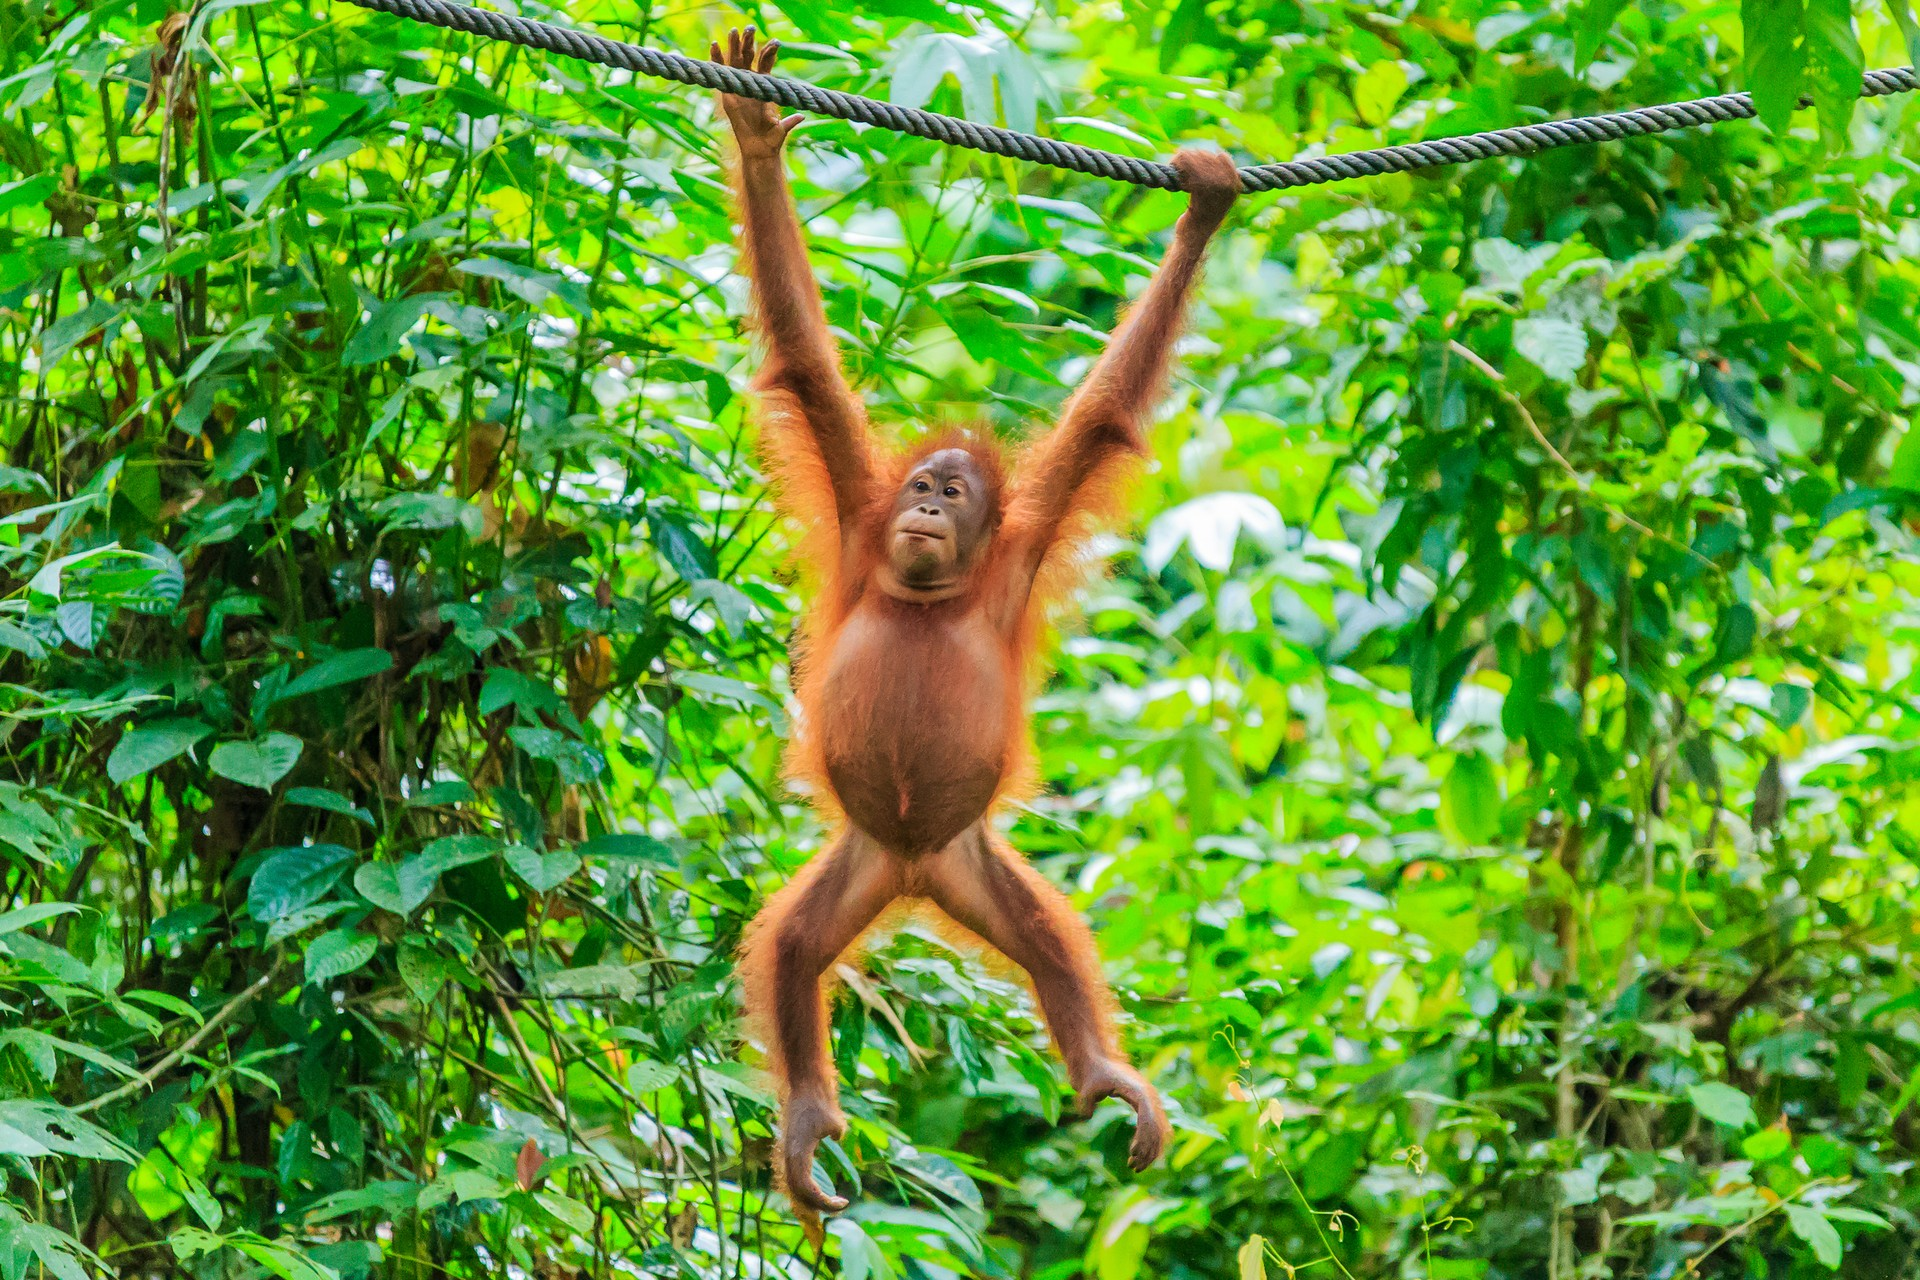 An orangutan hanging in the trees of the Danum Valley Conservation Area